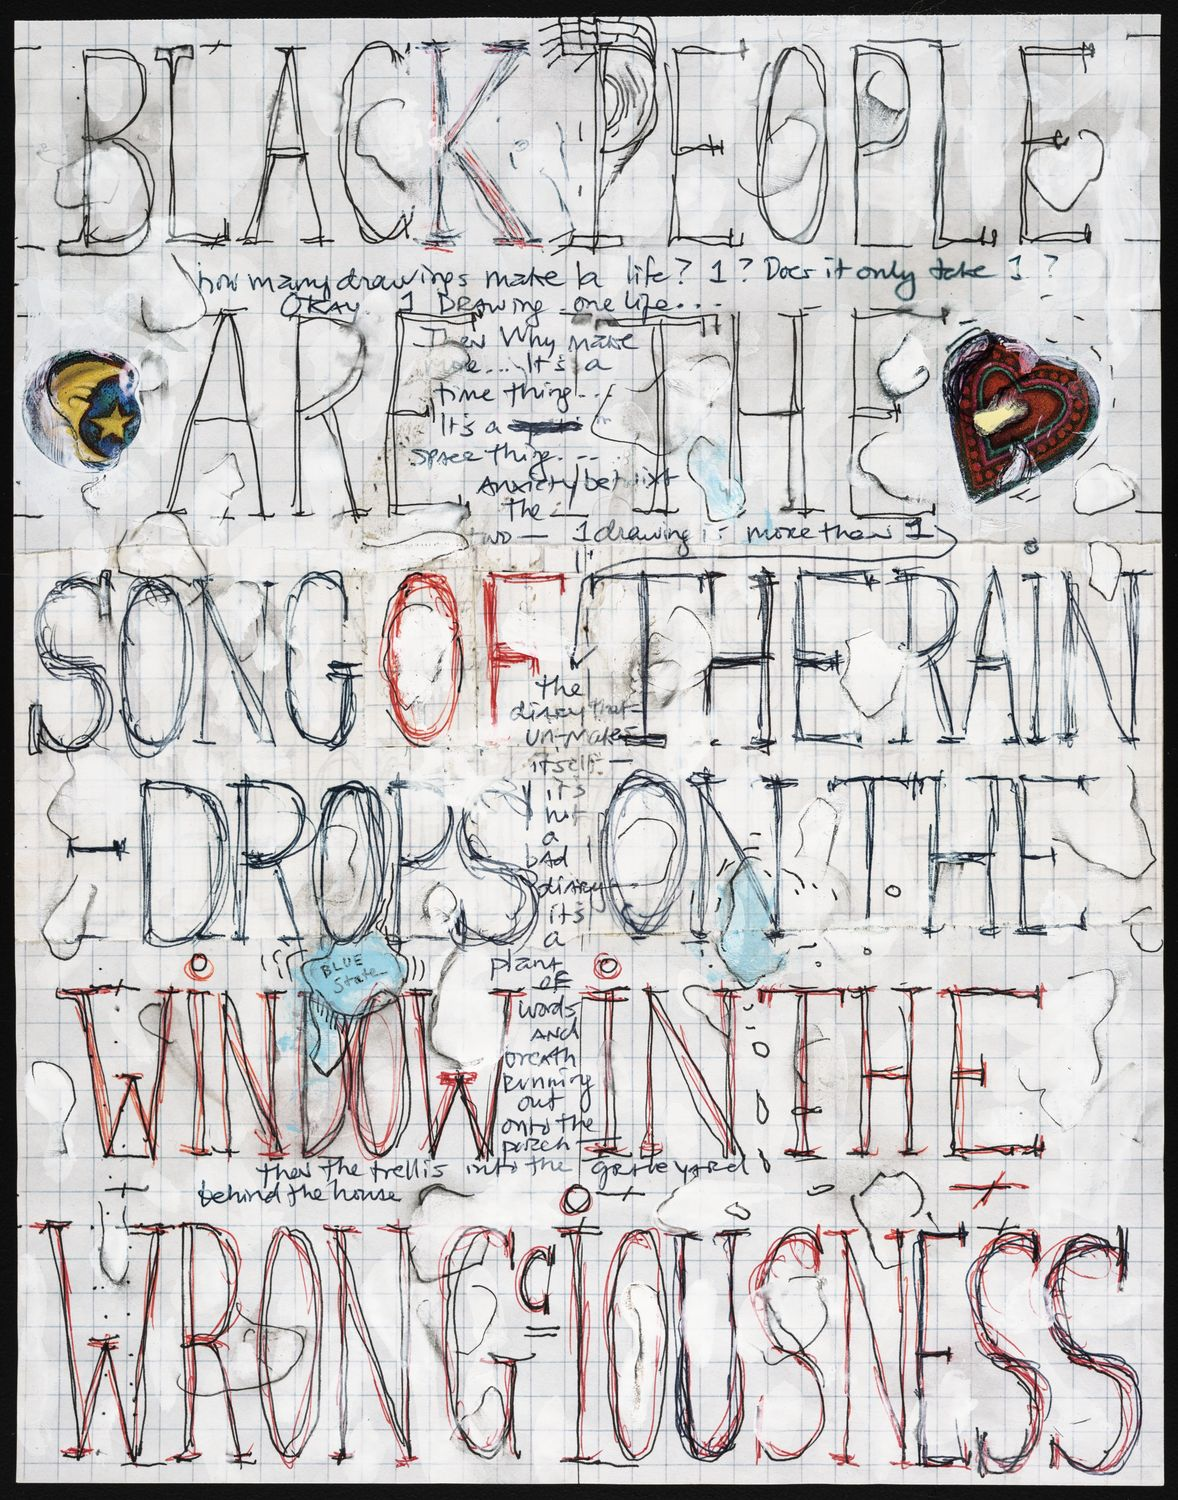 Pope.L - Skin Set Drawing: Black People Are the Song of the Raindrops on the Window on the Wrong'iousness